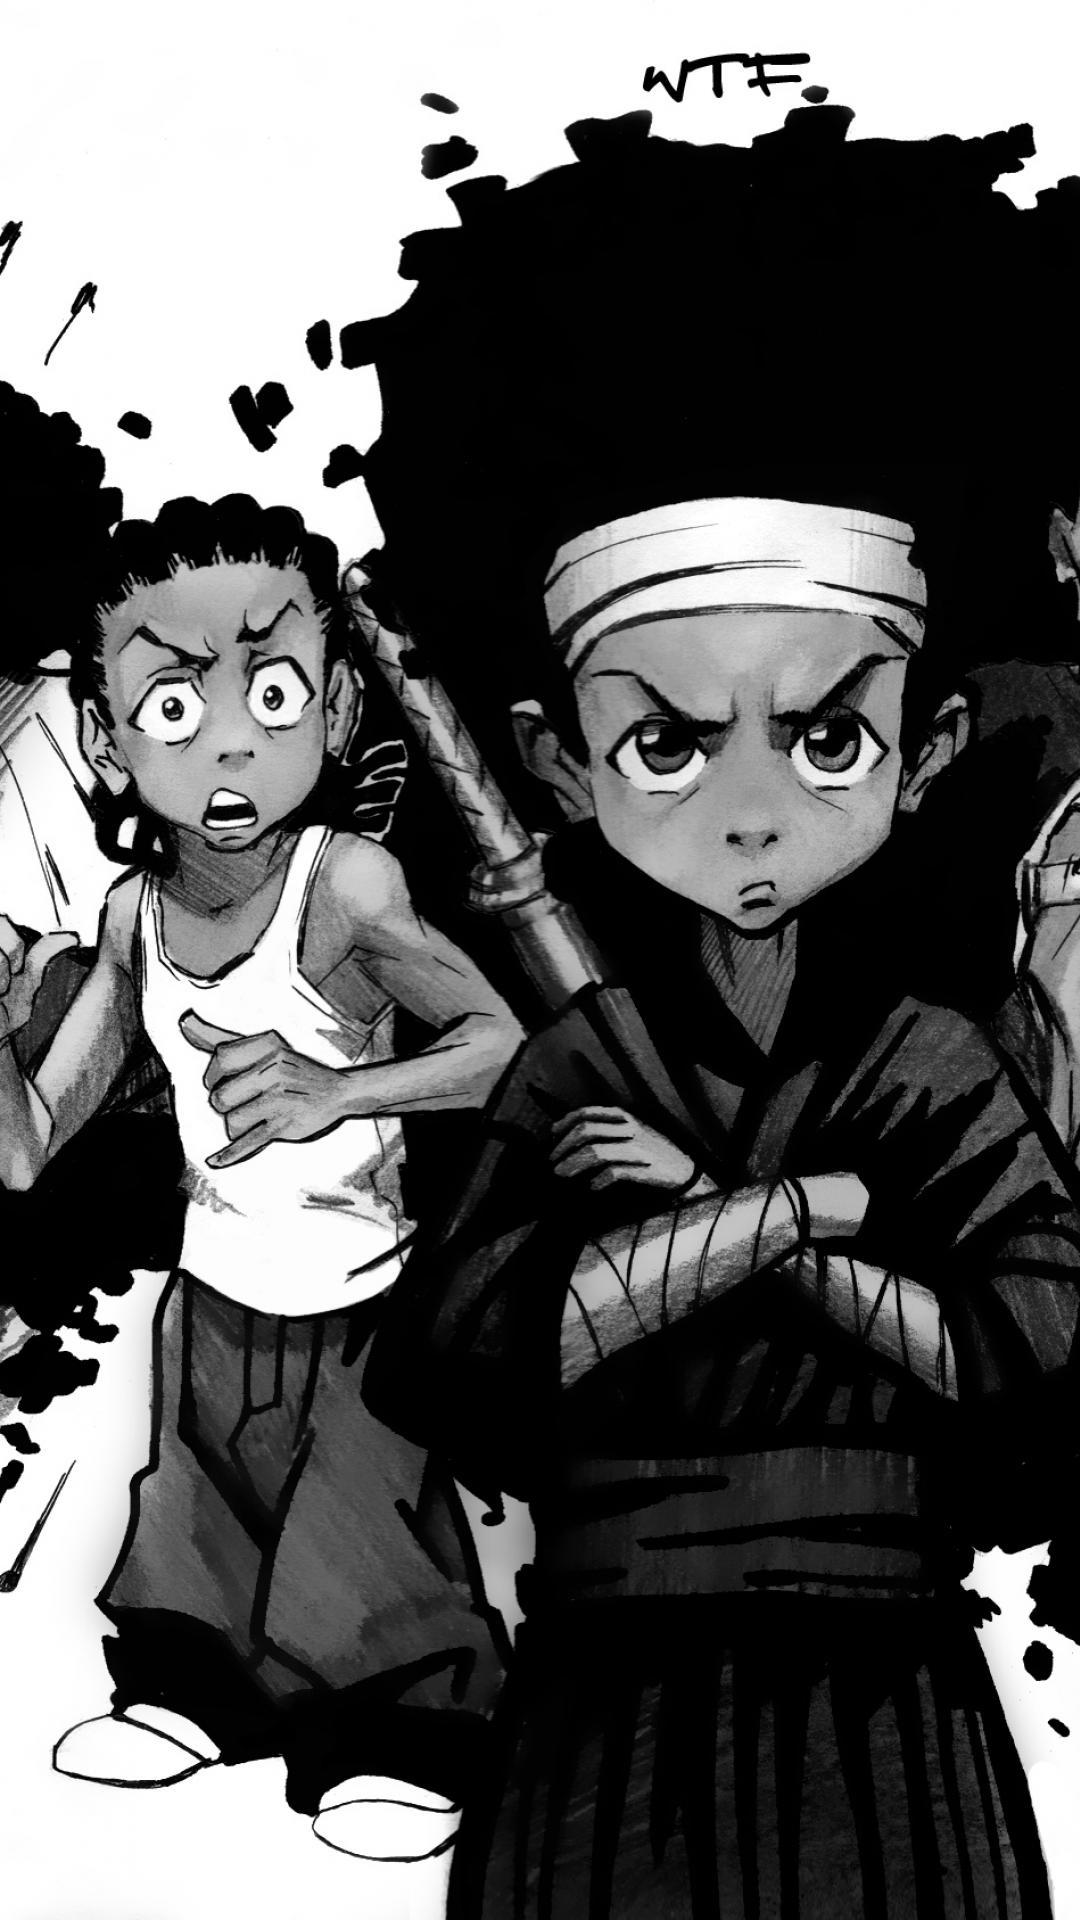 Boondocks Season 4 Wallpapers Wallpaper Cave